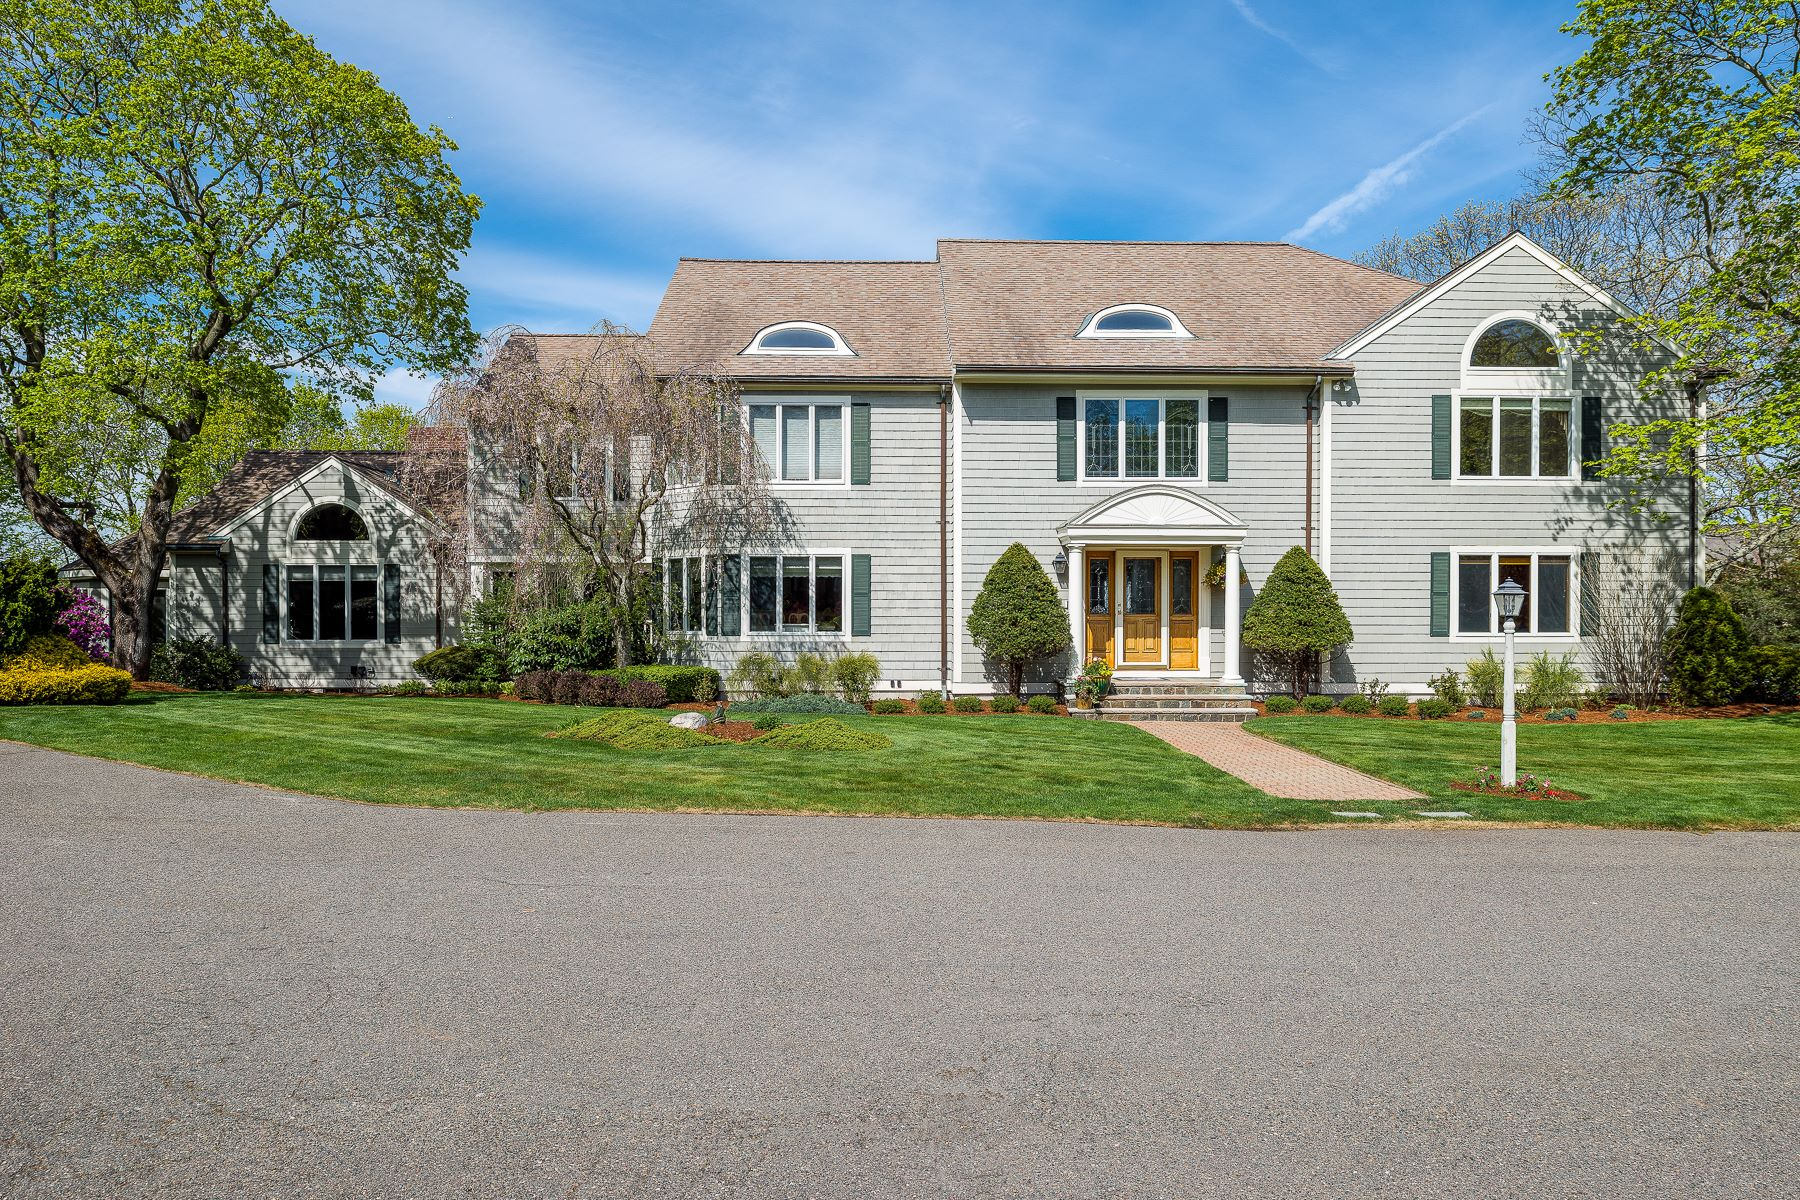 Single Family Home for Sale at North Shore Oasis 1 Stonecleave Lane Swampscott, Massachusetts, 01907 United States